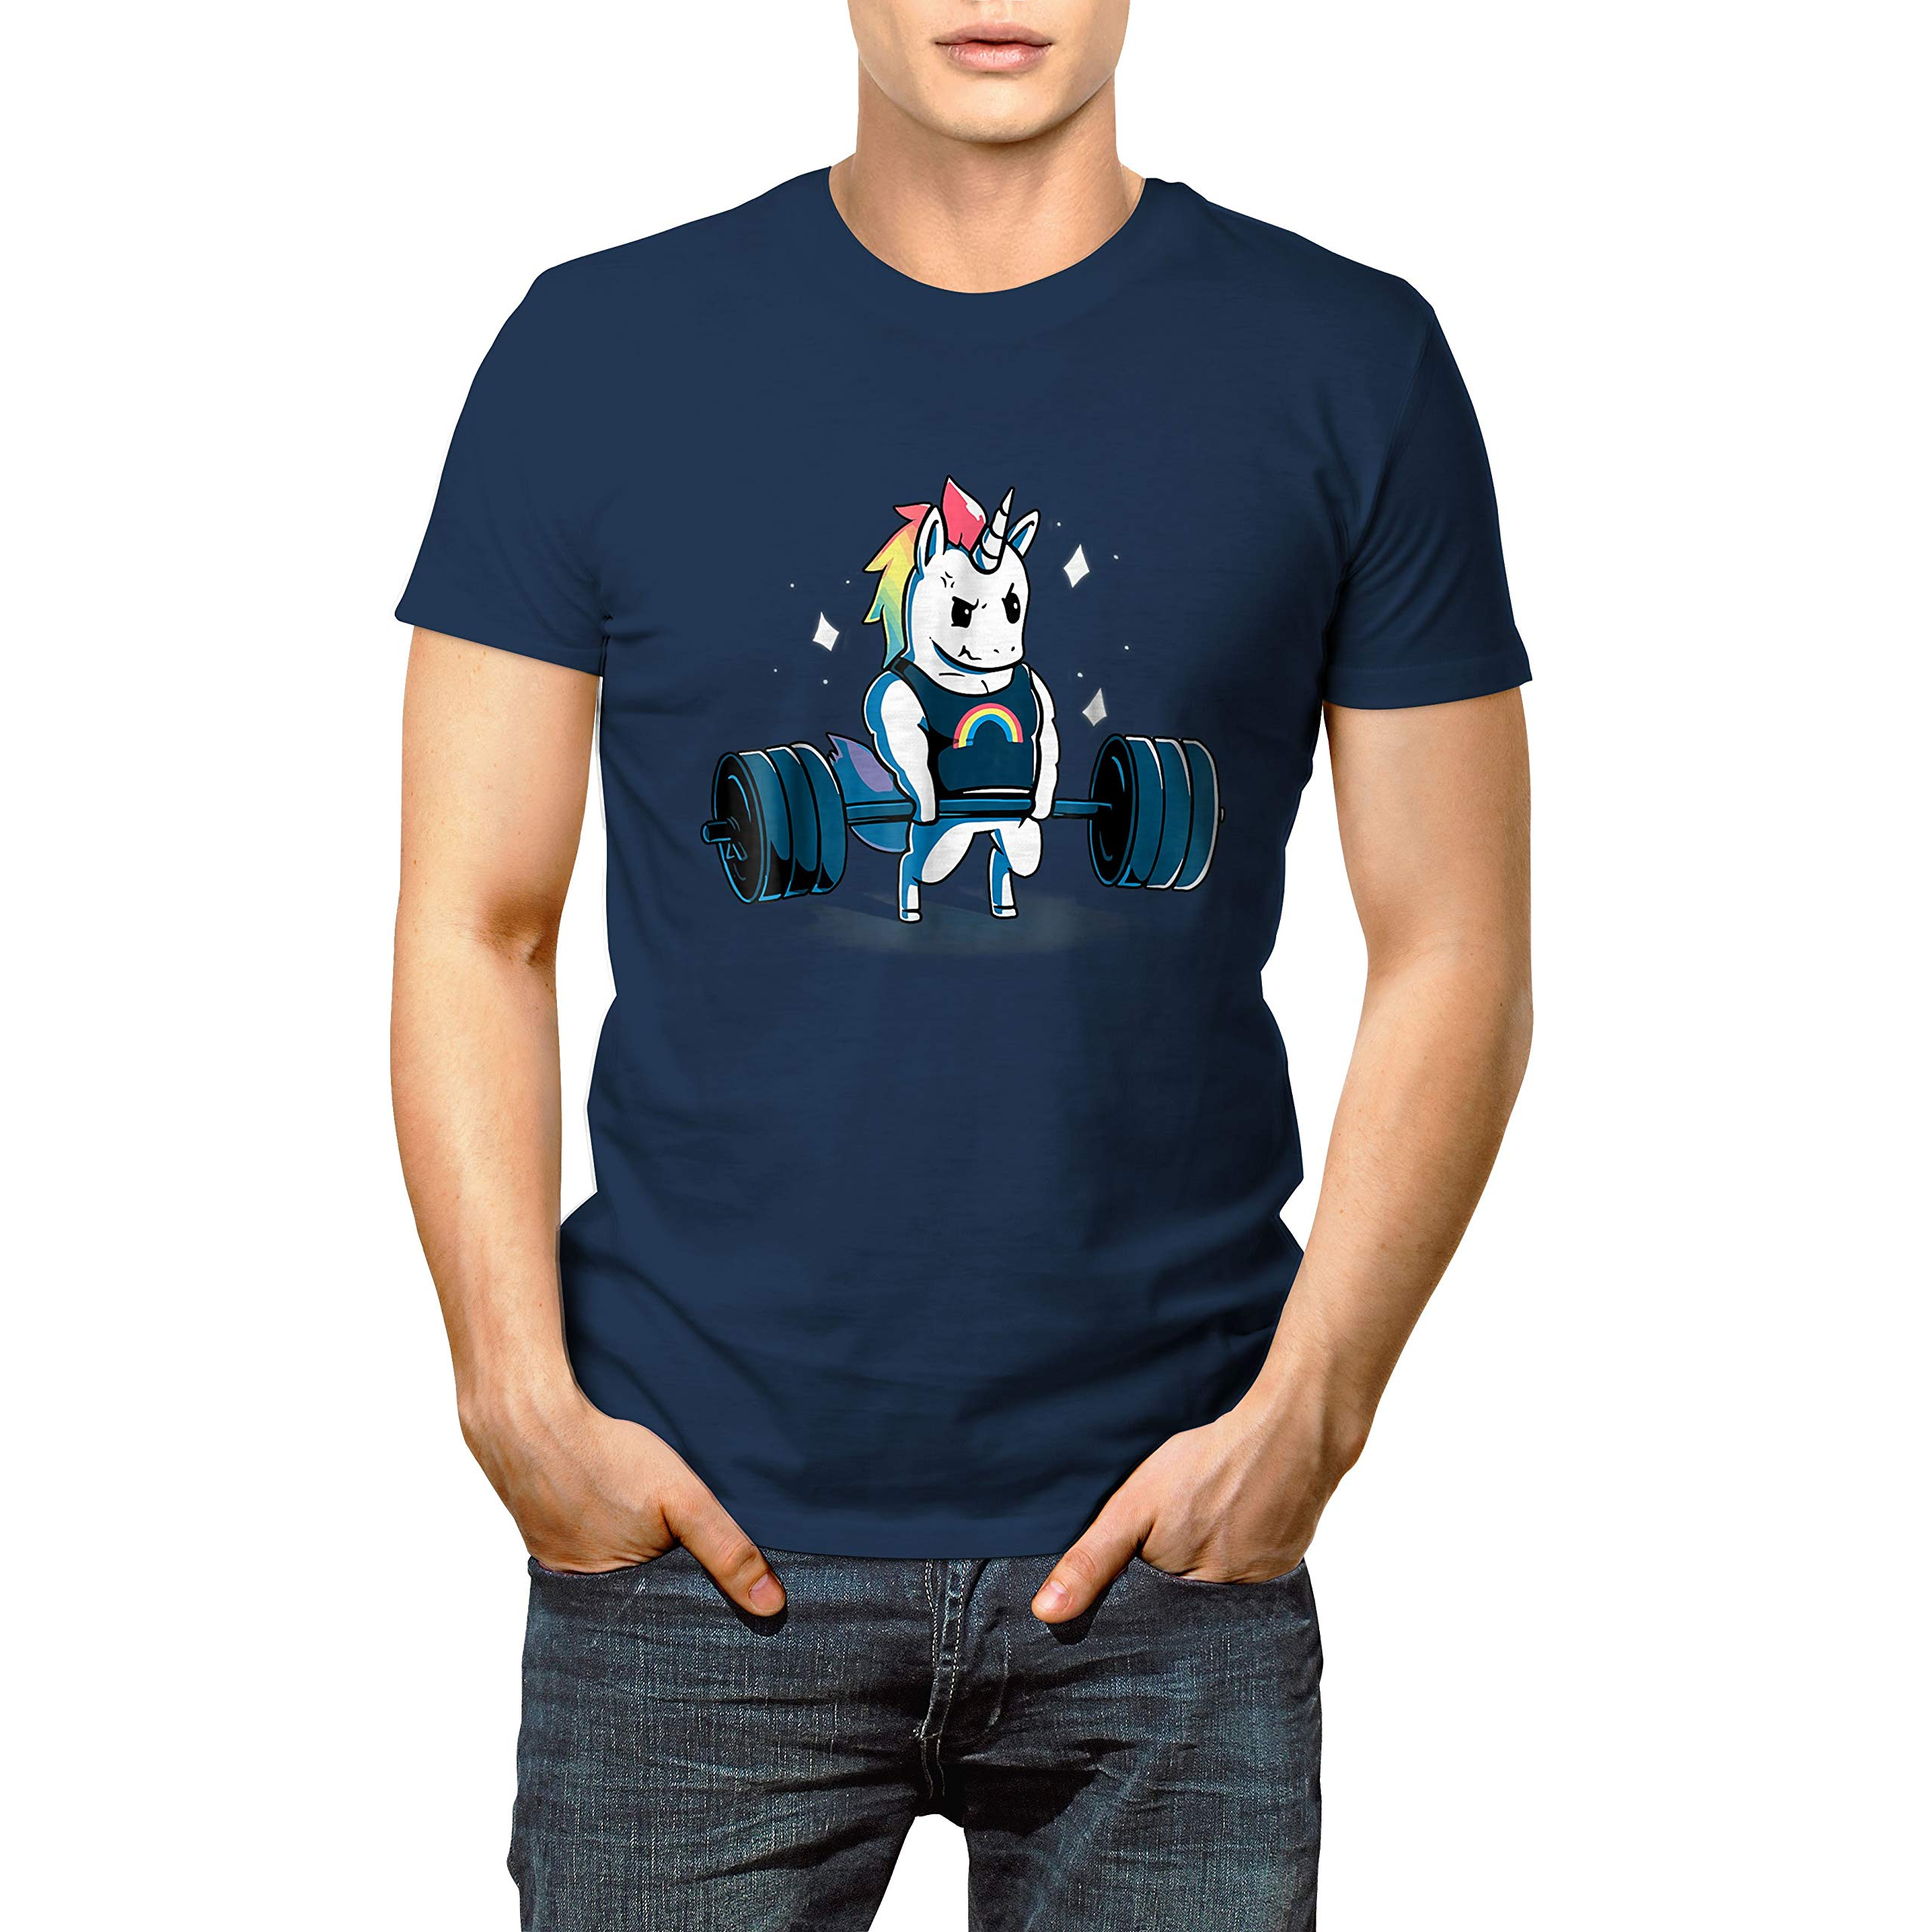 Funny Gym Unicorn Weightlifting Ness T Shirt Gift For Christmas New Year 6914